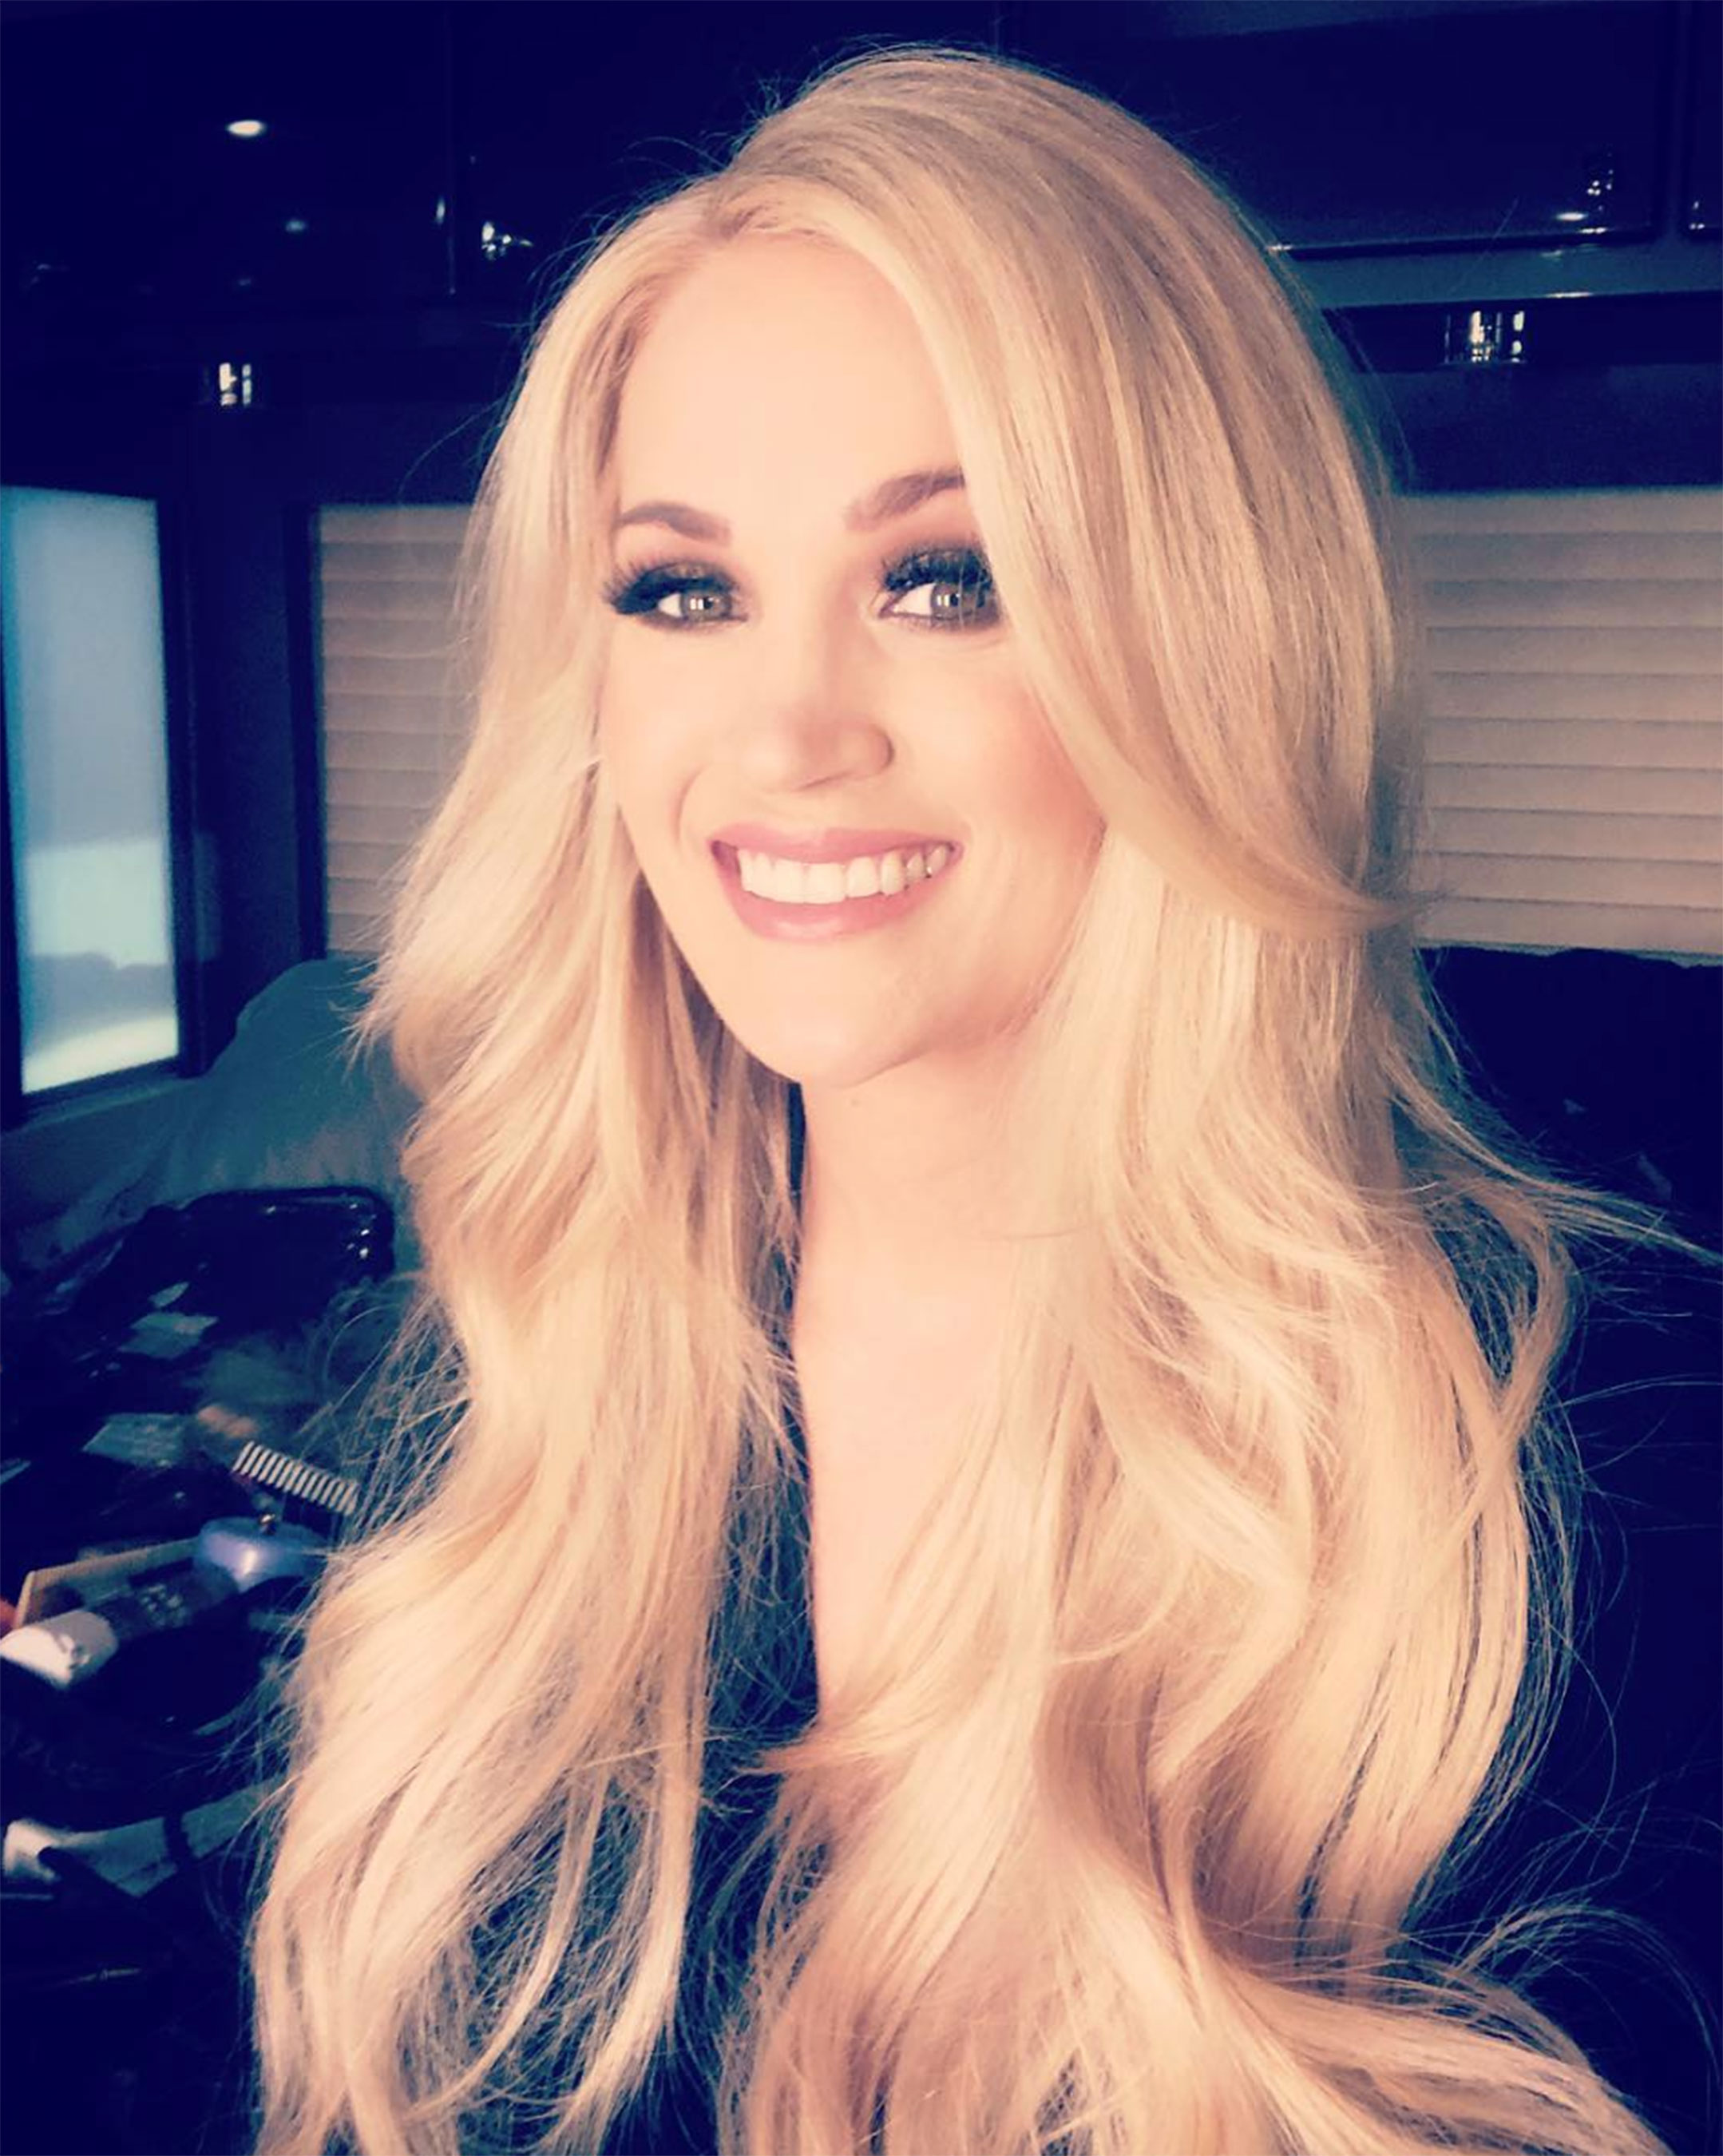 New Mom Carrie Underwood Was Pumping as She Got Glammed Up Ahead of Her ACMs Performance